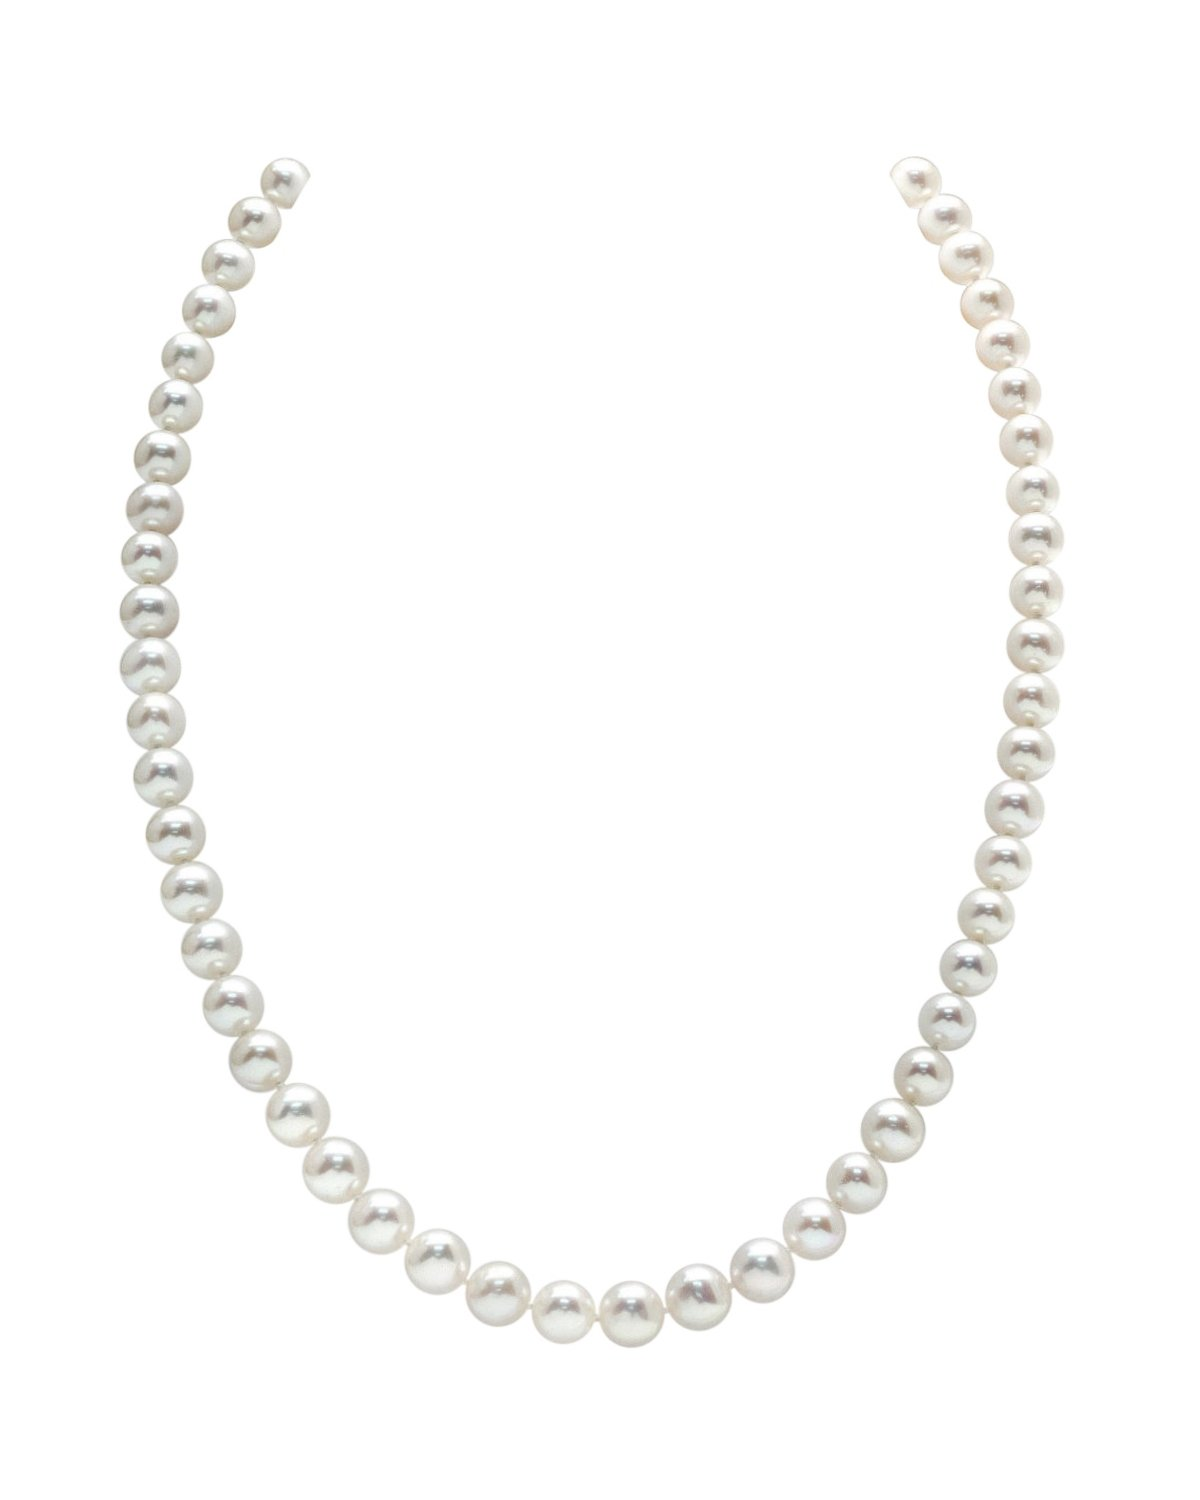 b9e3f615c 7-8mm White Freshwater Pearl Necklace